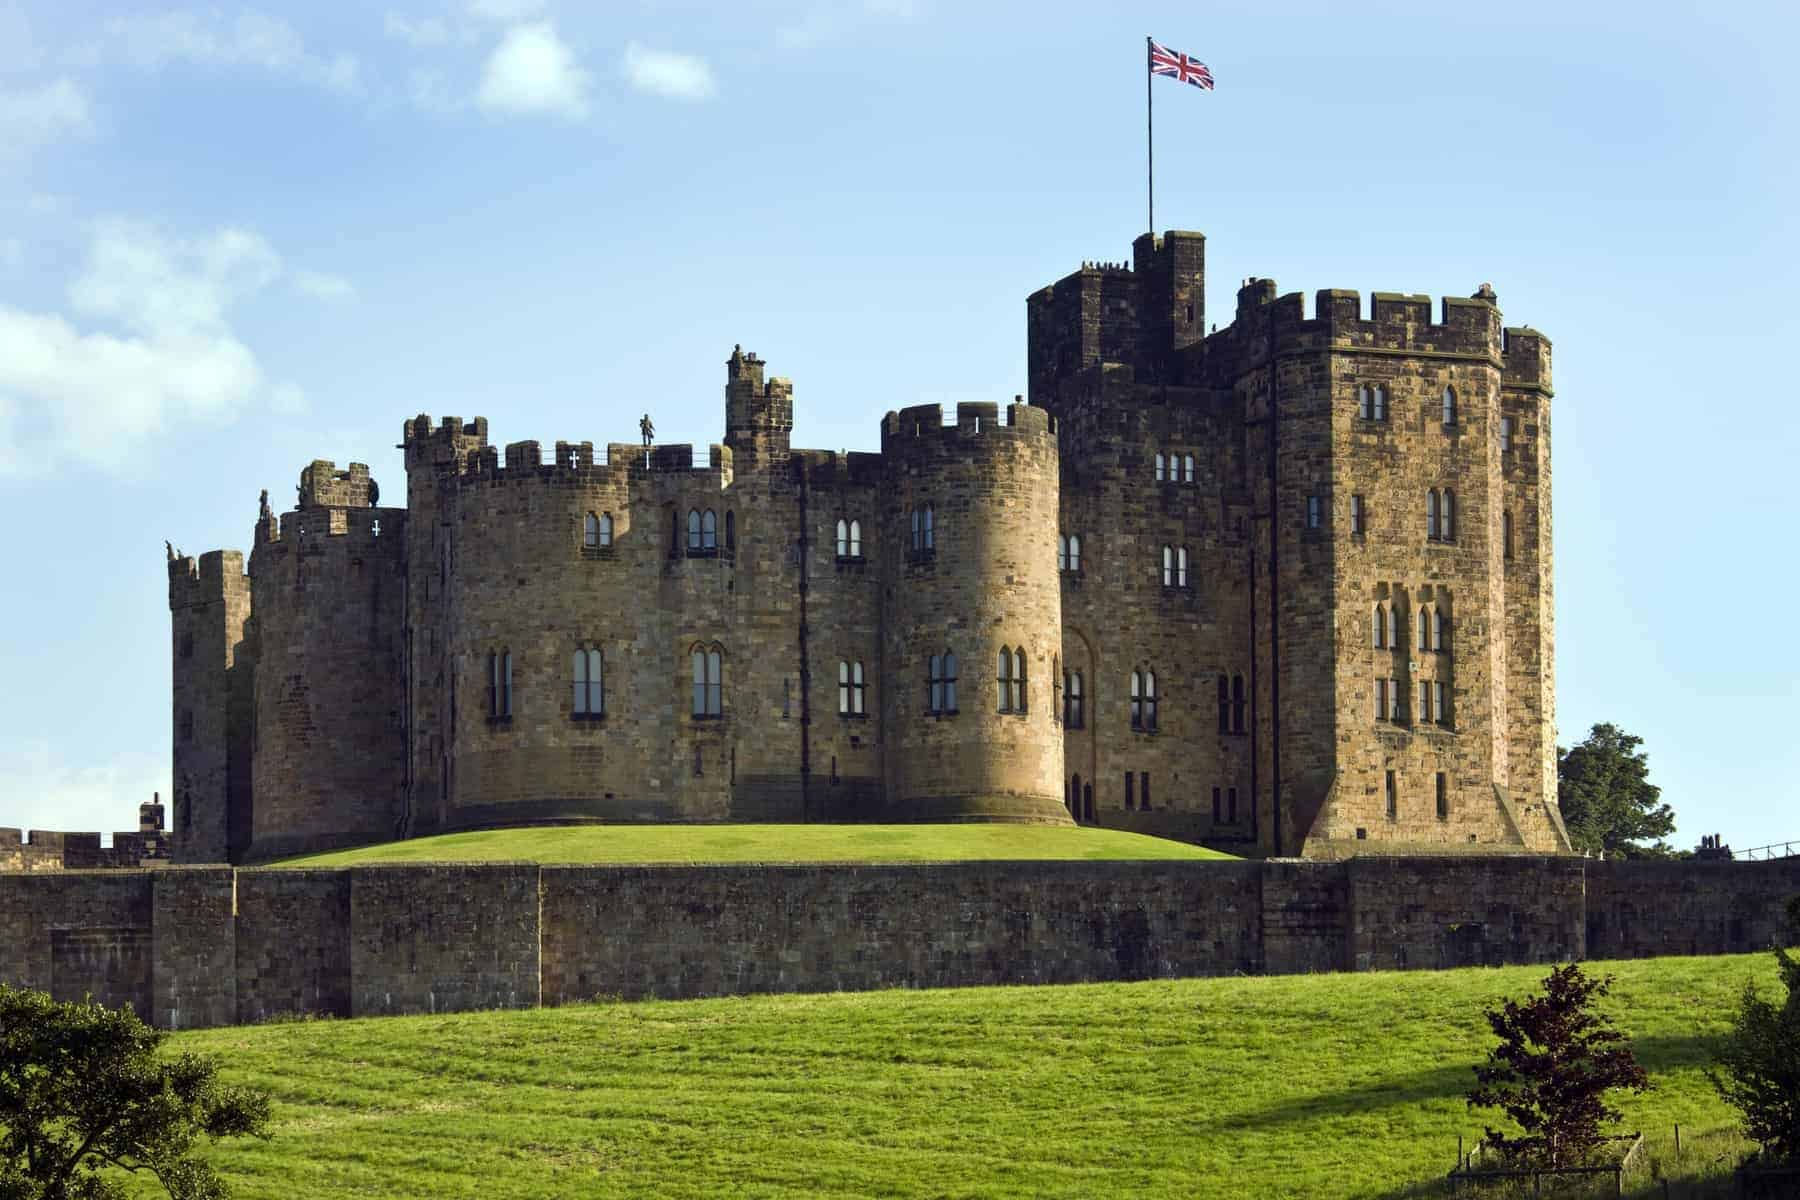 Alnwick Castle in the town of Alnwick in Northumberland in North East England. Dates from 1096AD when Yves de Vescy became Baron of Alnwick and erected the earliest parts of the castle. Since 1309 the castle has been in the hands of the Percy Family who are the Dukes and Earls of Northumberland.